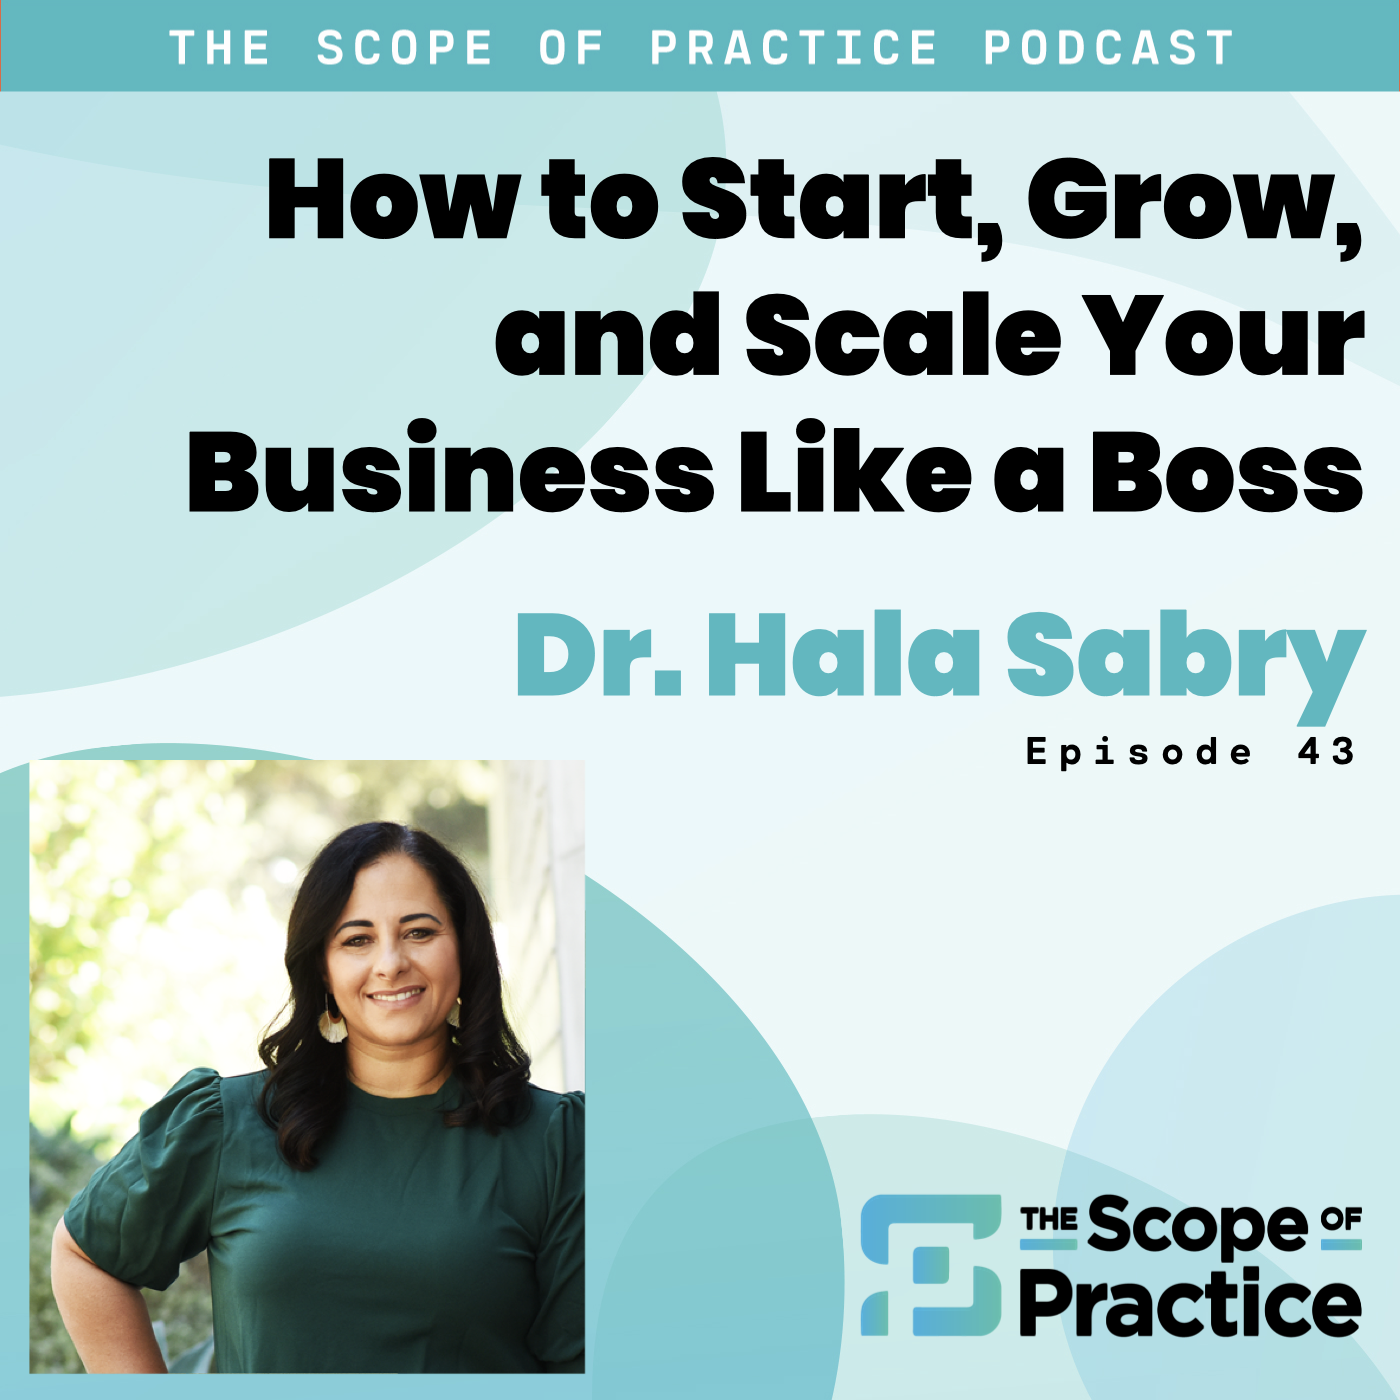 Start grow and scale your business like Dr. Hala Sabry founder of Physician Moms Group